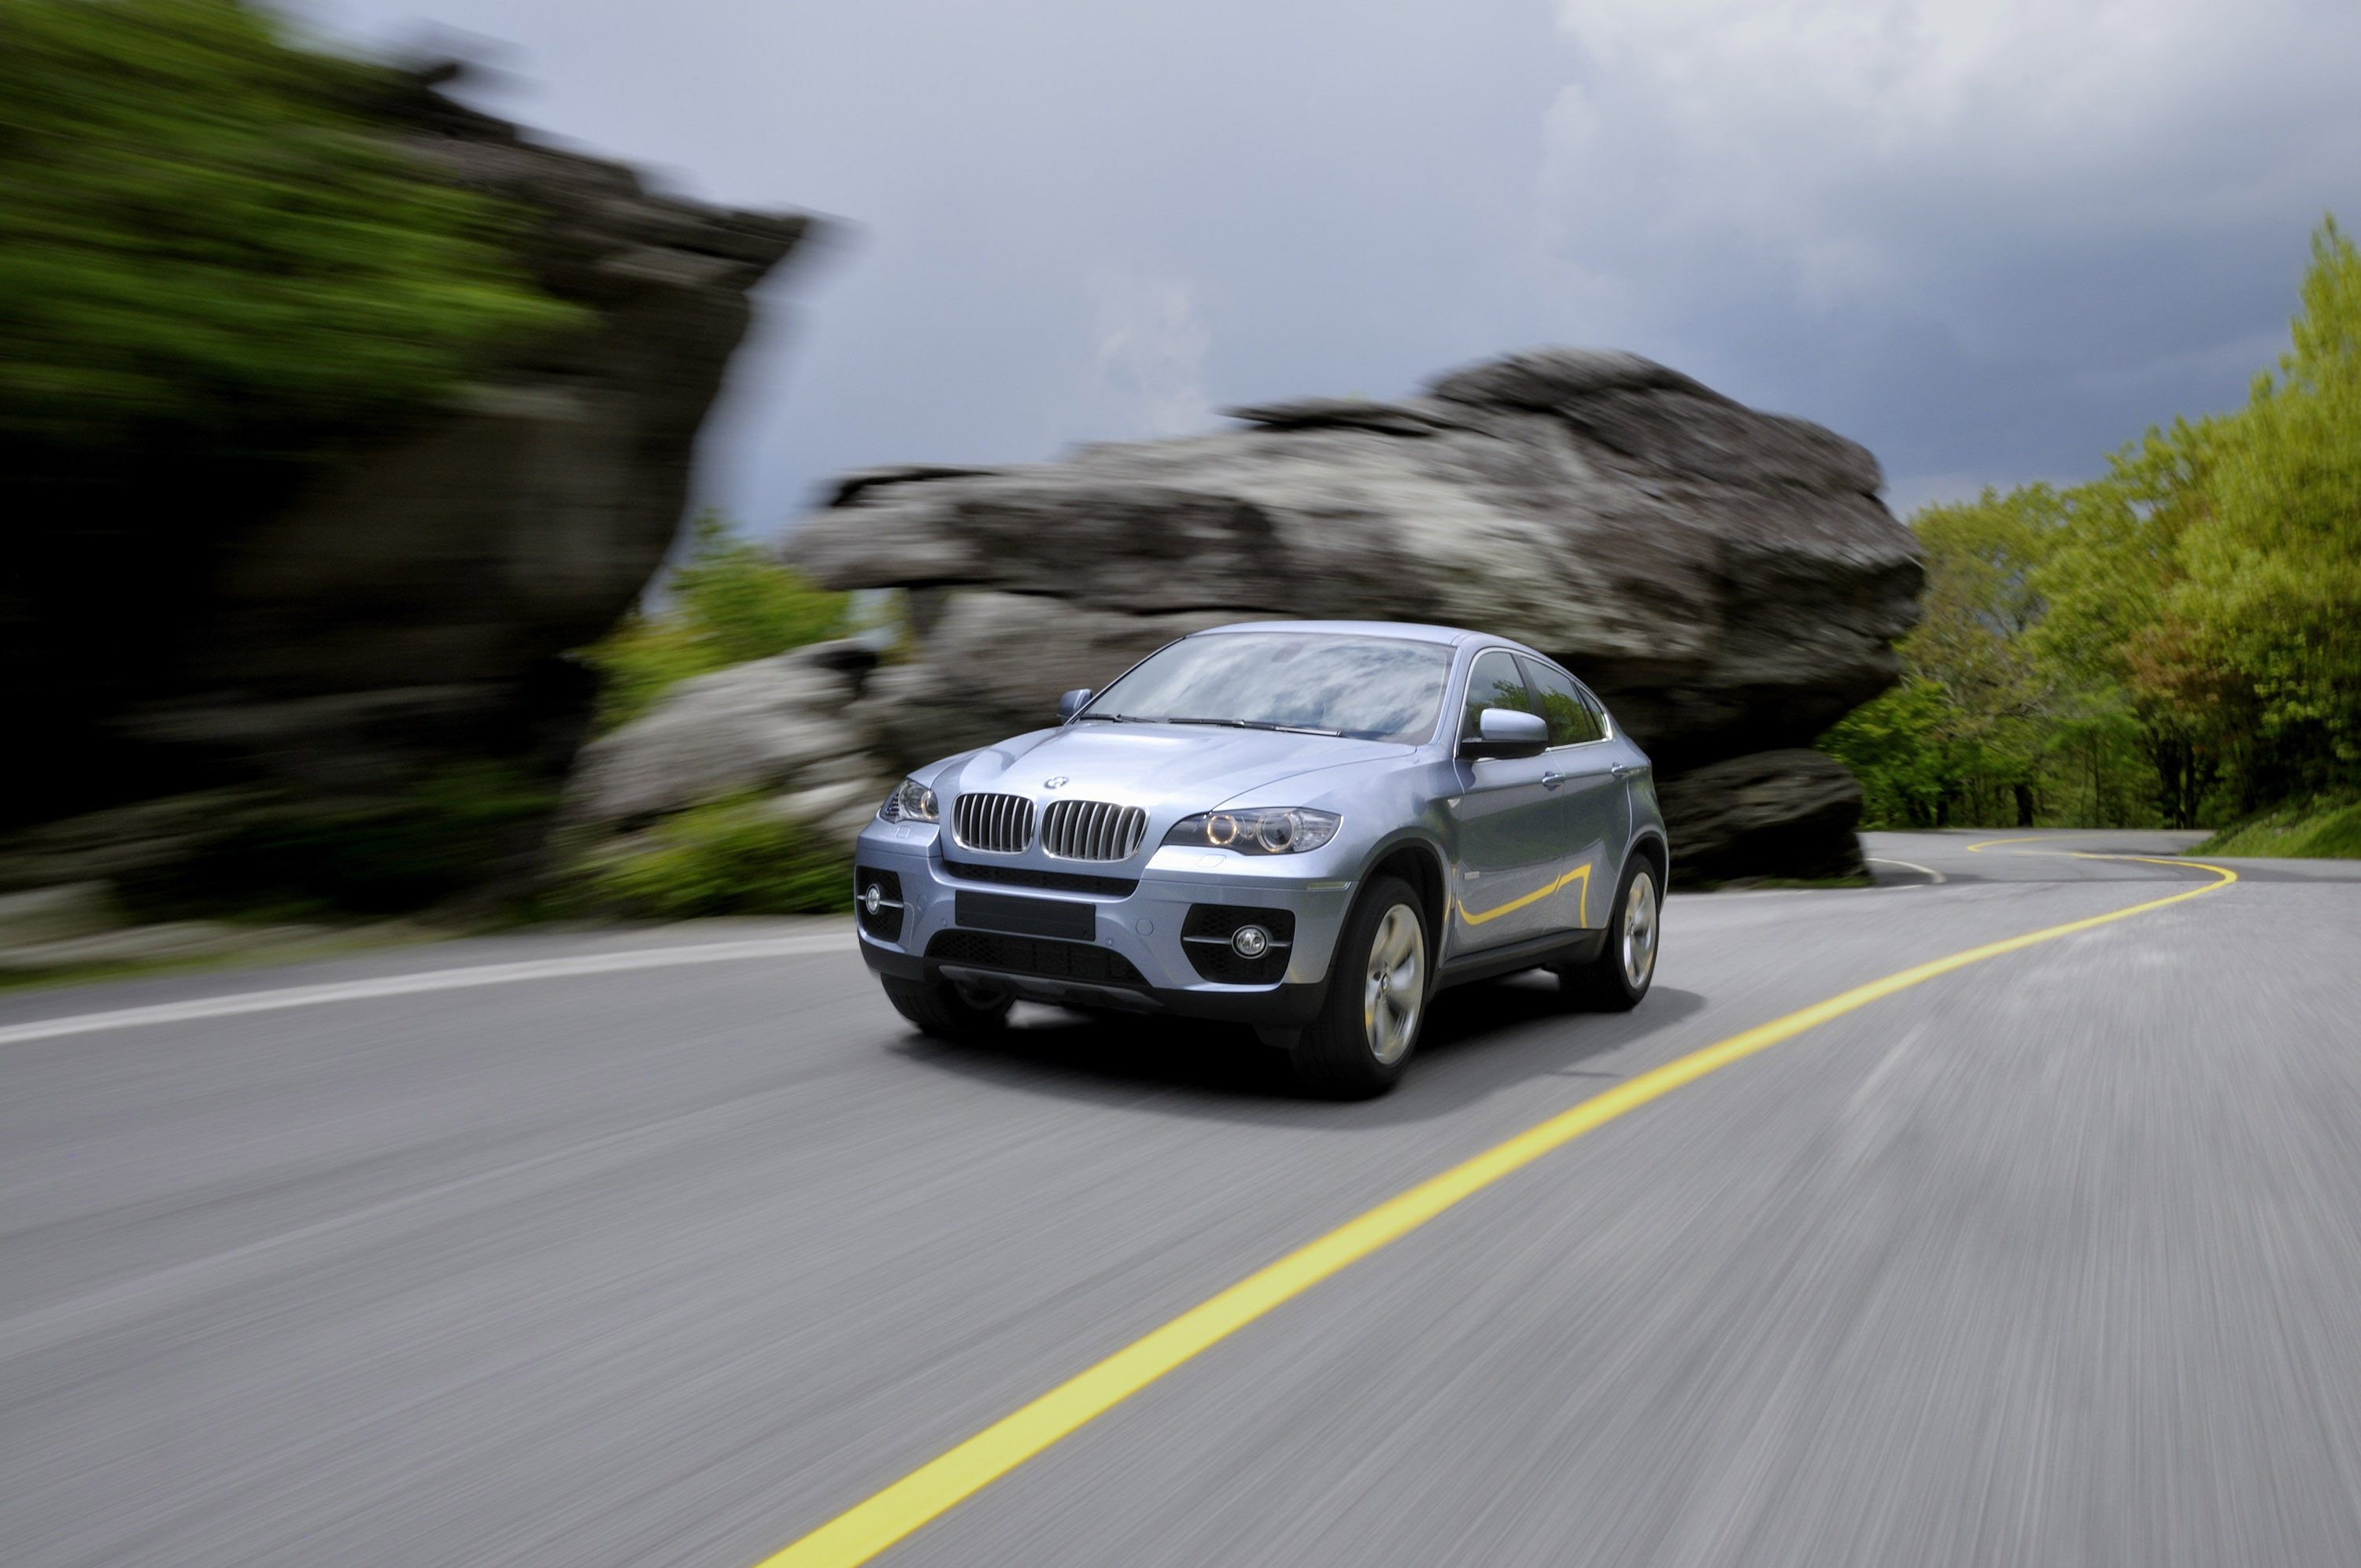 2010 BMW ActiveHybrid X6 - фотография №23